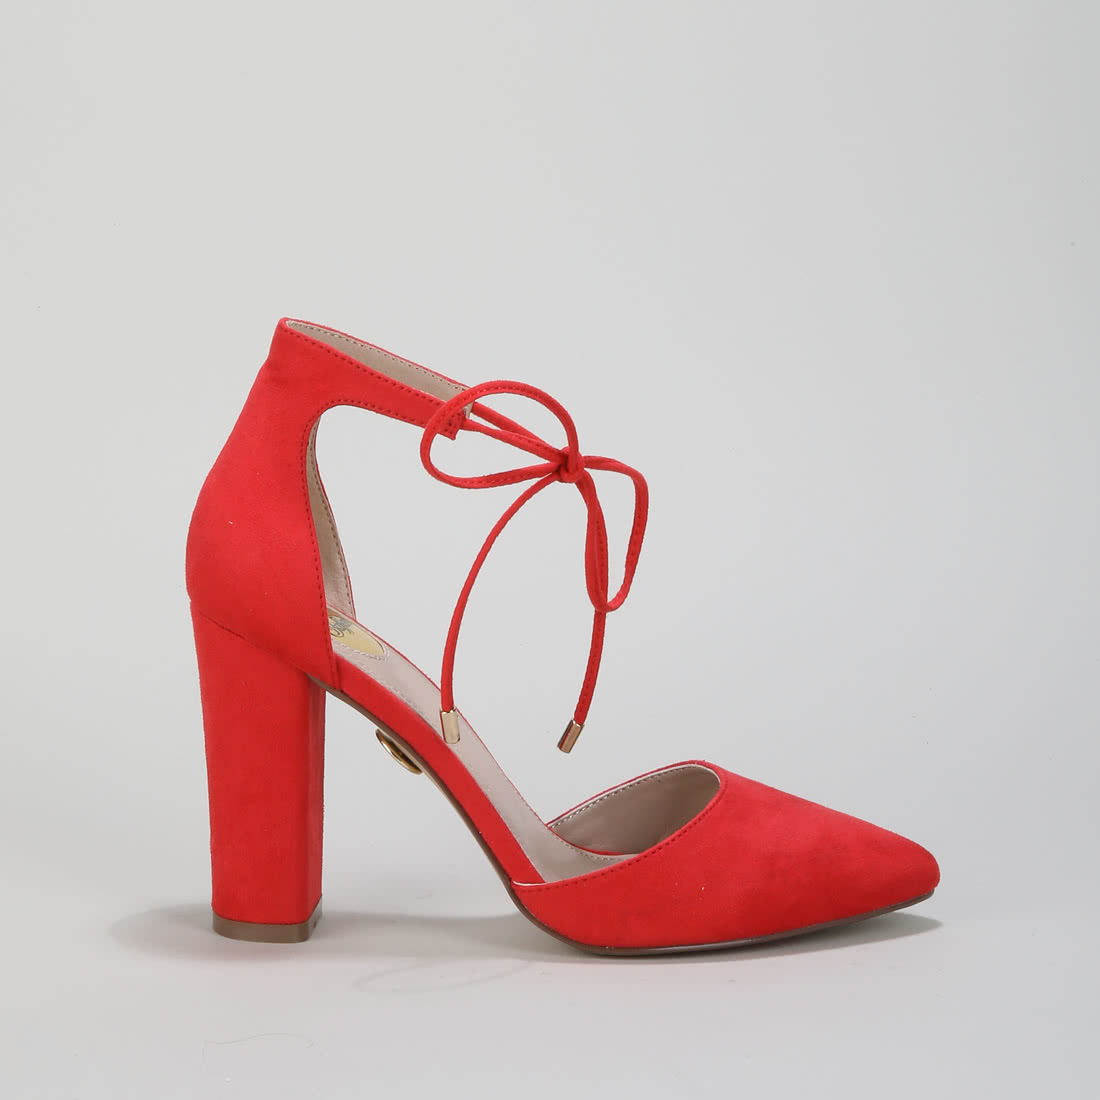 8c7fd0a5fc4326 Belle pumps suede red buy online in BUFFALO Online-Shop